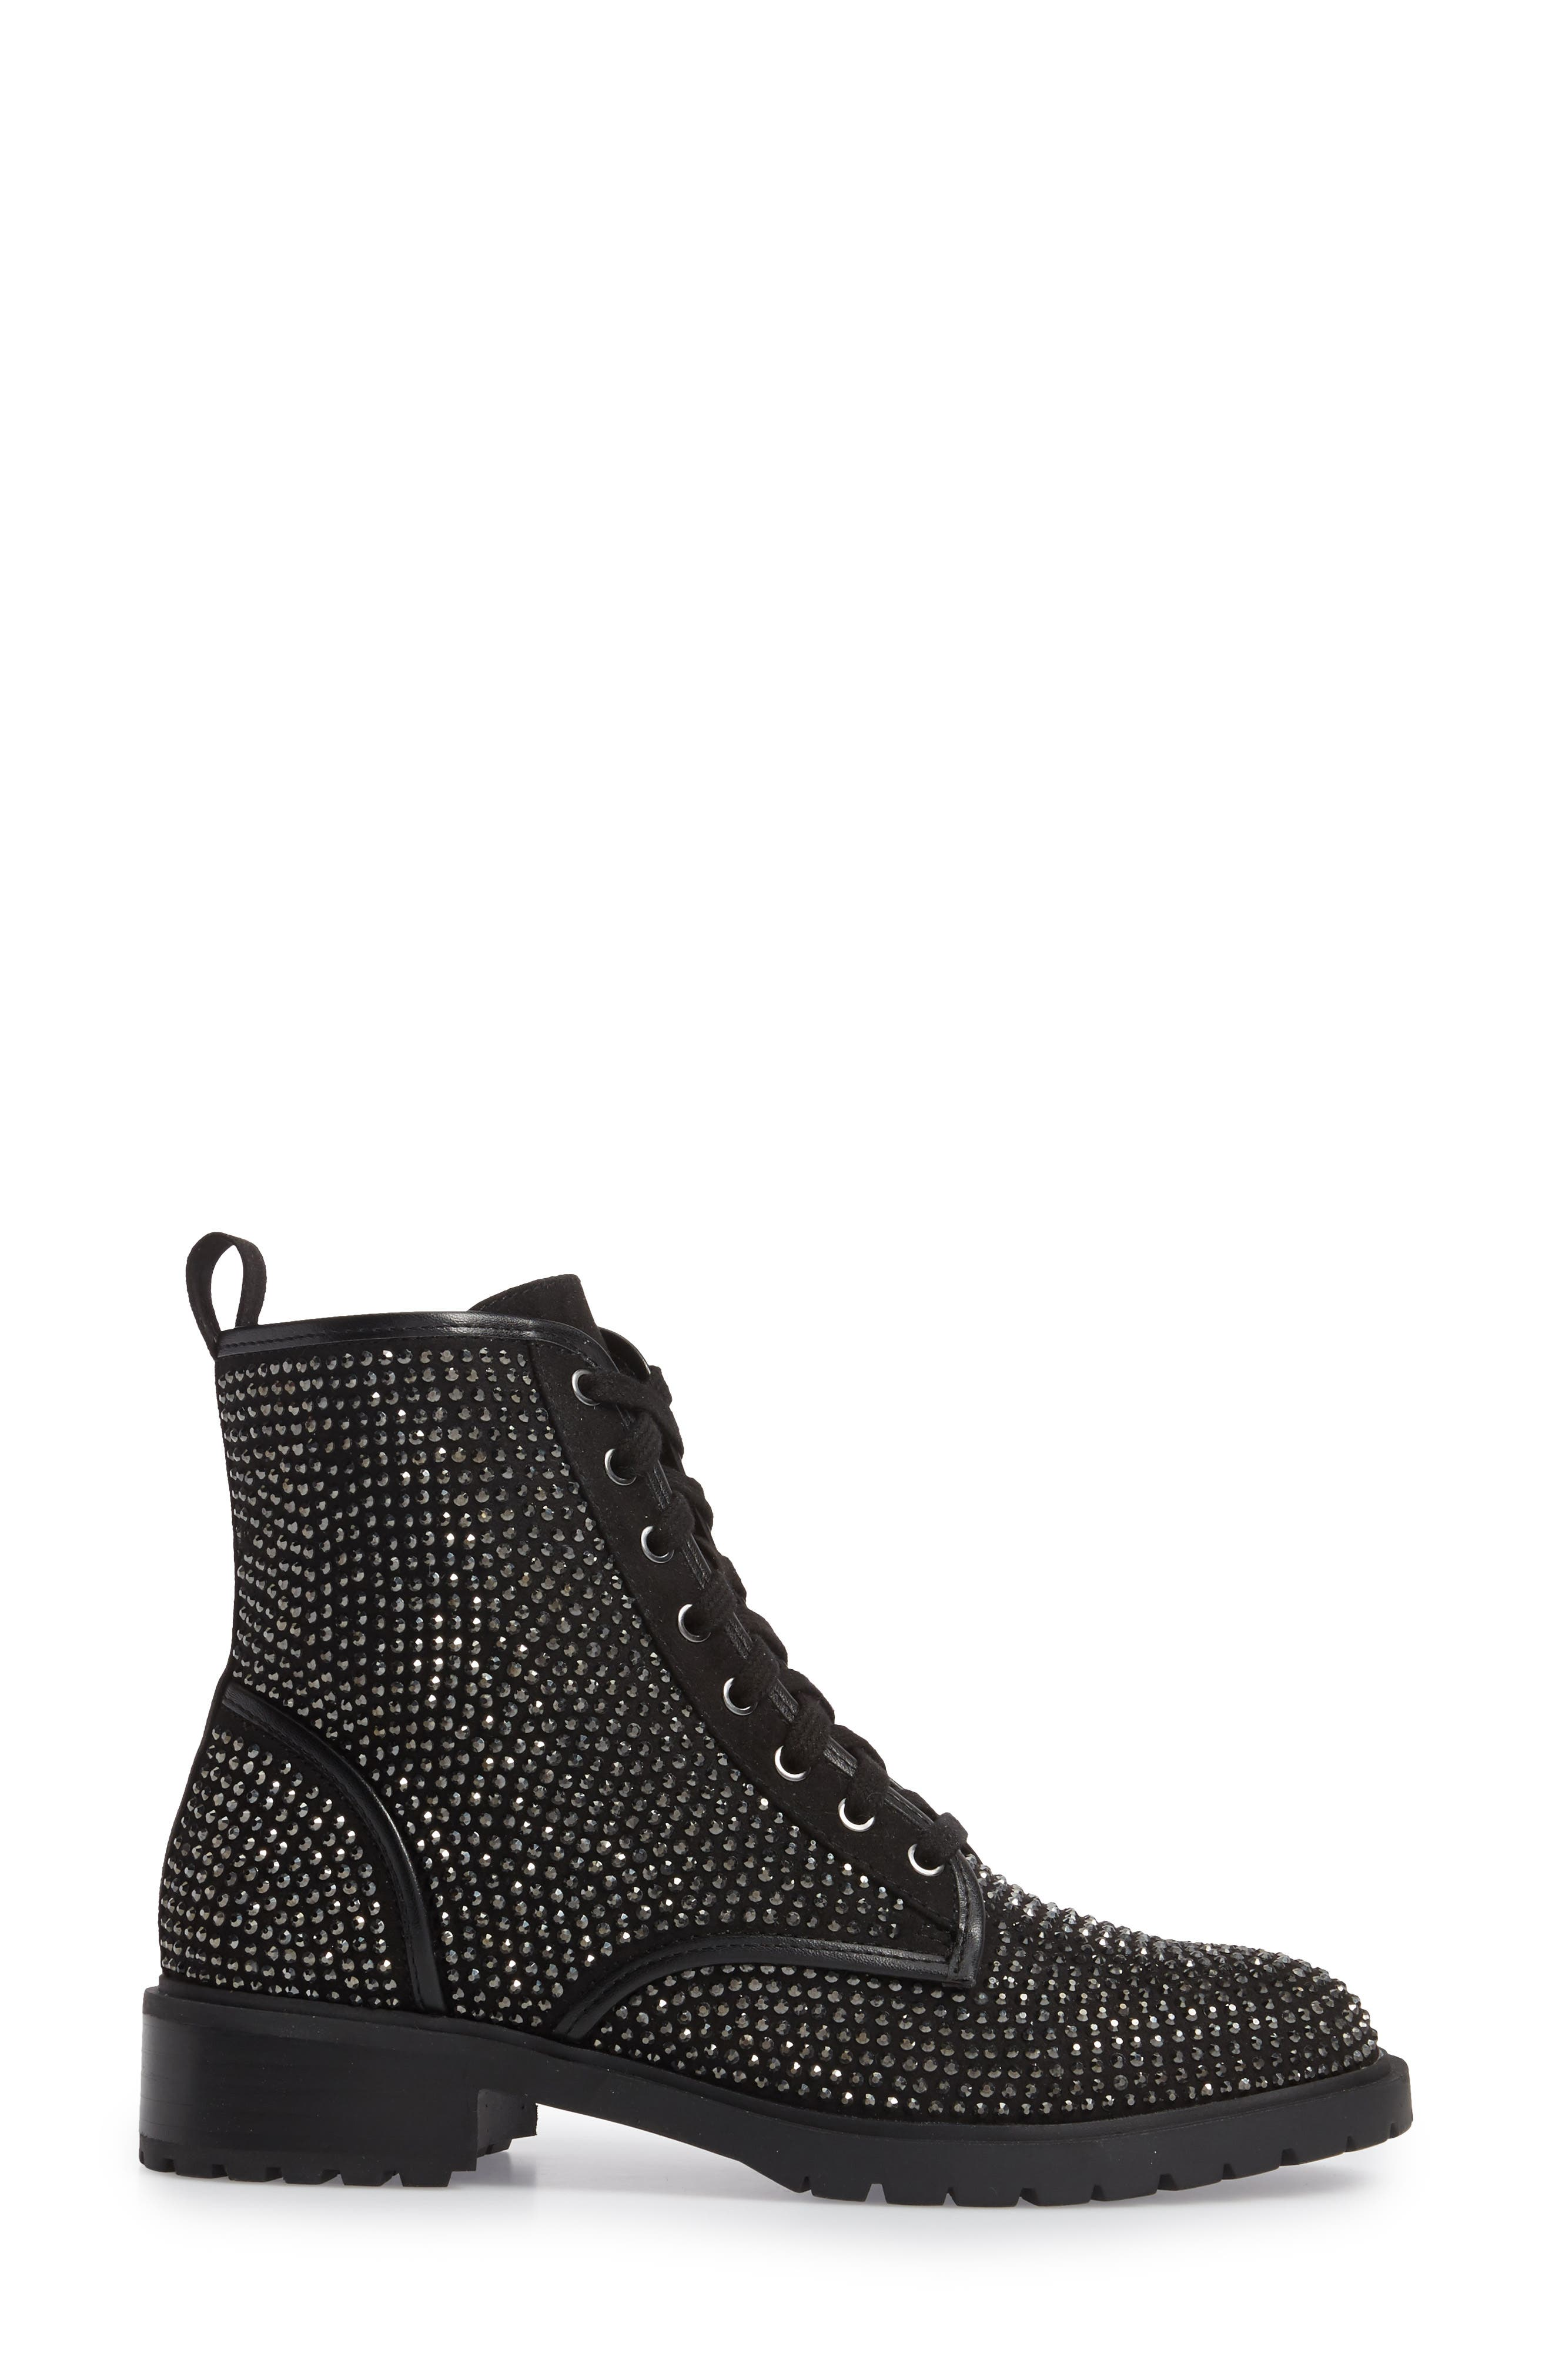 Ozzy Embellished Boot,                             Alternate thumbnail 3, color,                             015